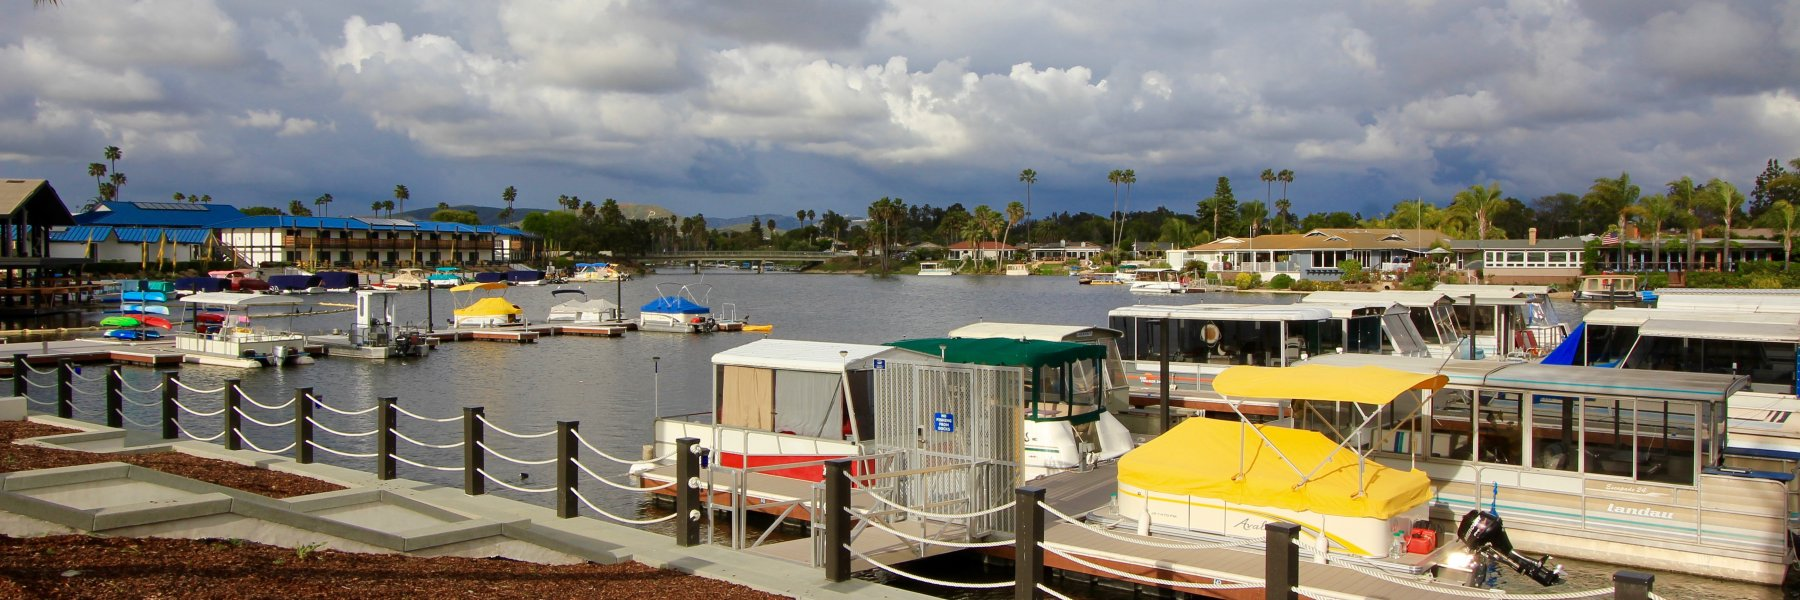 Lake San Marcos is a community of homes in San Marcos California